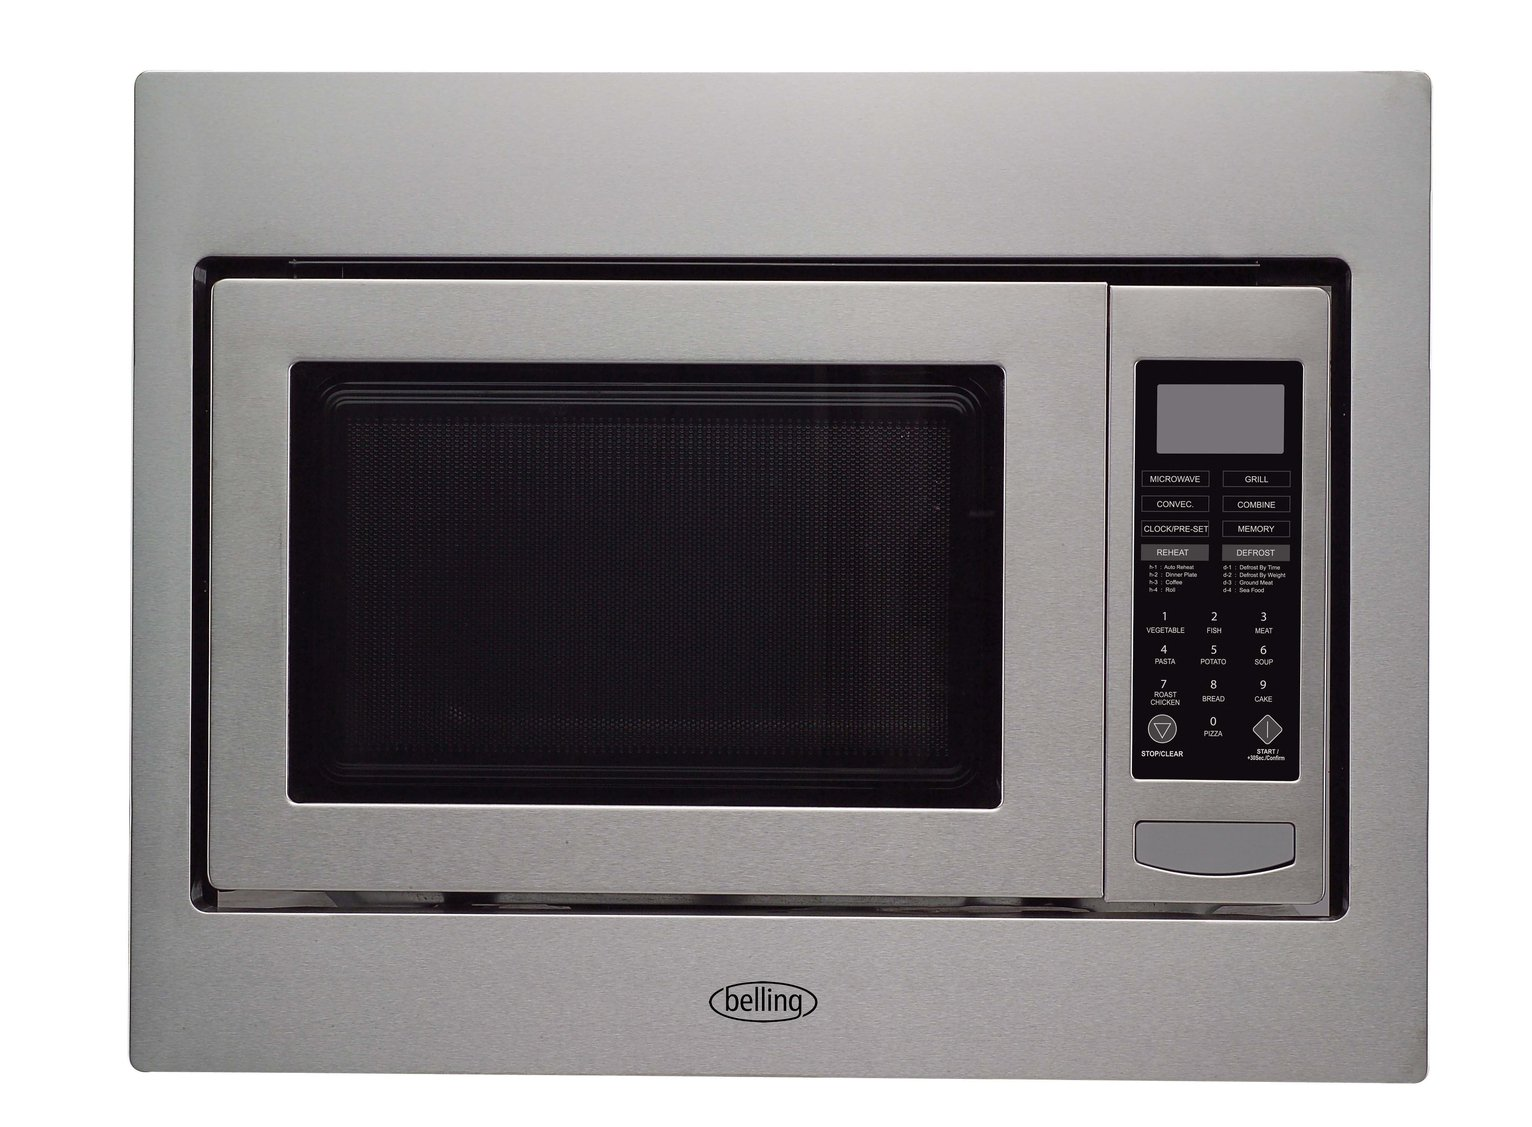 Image of Belling BIMW60 Integrated Microwave - Stainless Steel